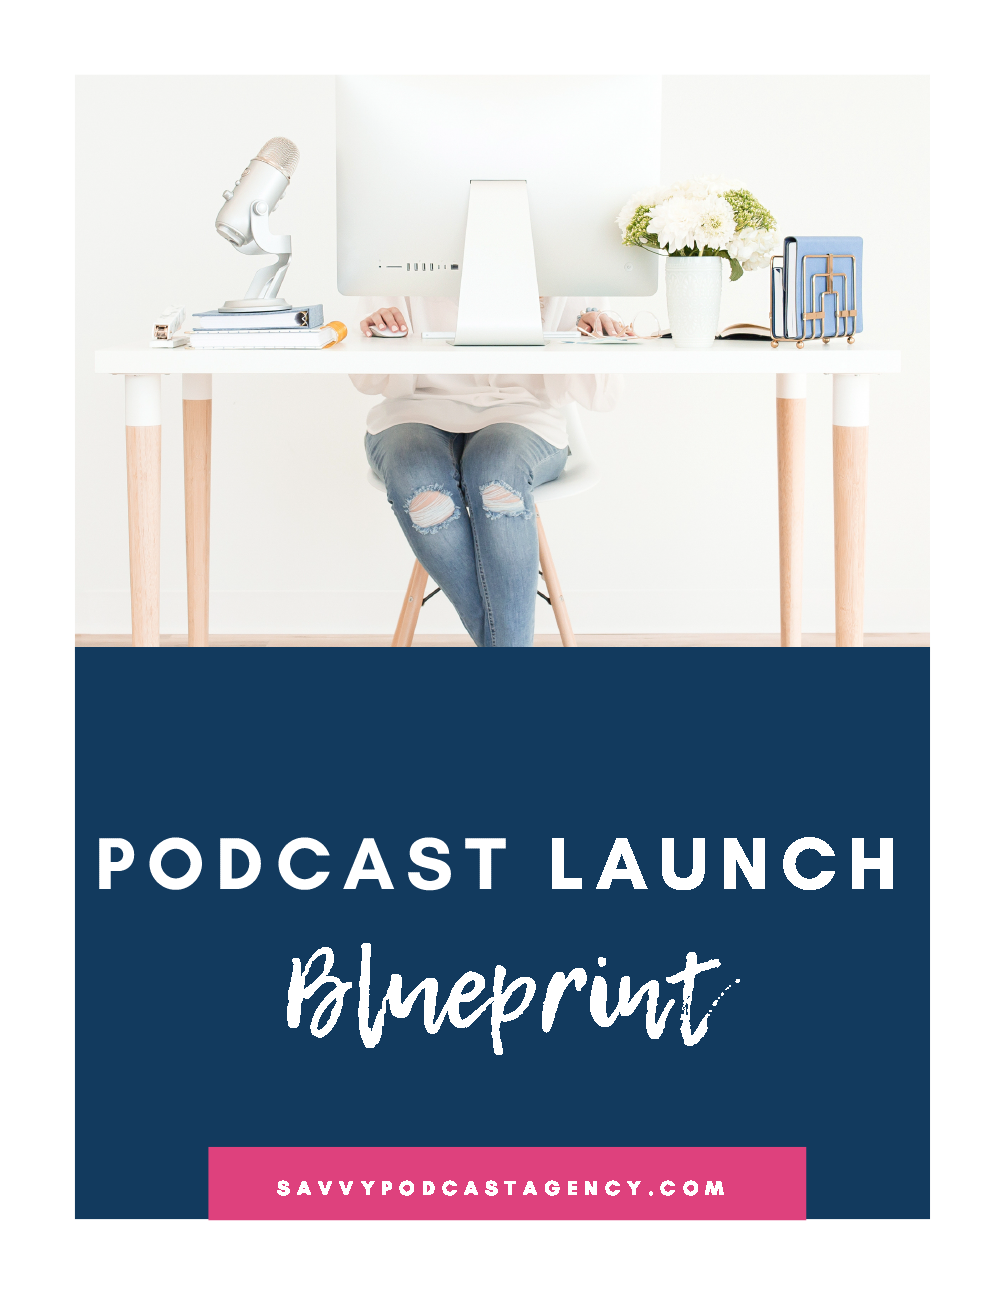 Podcast Launch Blueprint